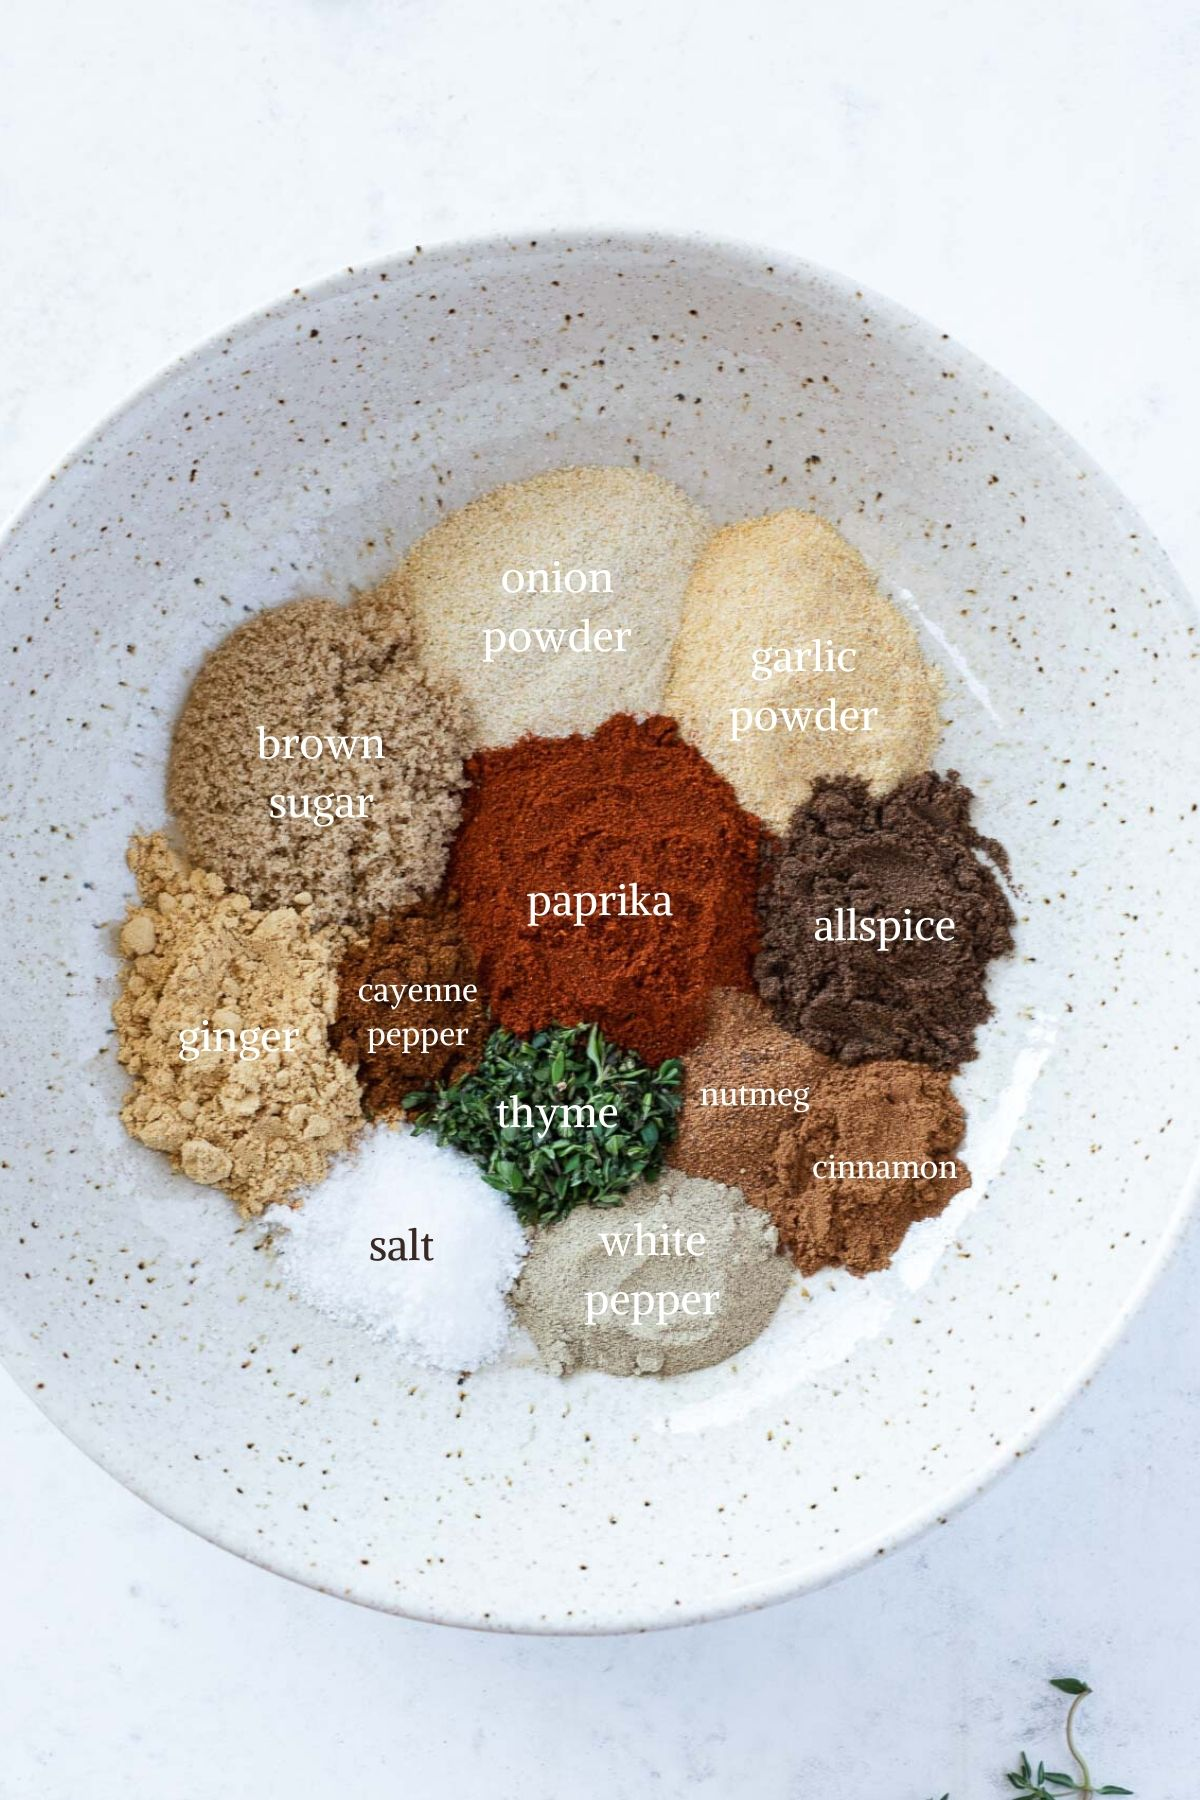 Homemade jerk seasoning ingredients in white bowl